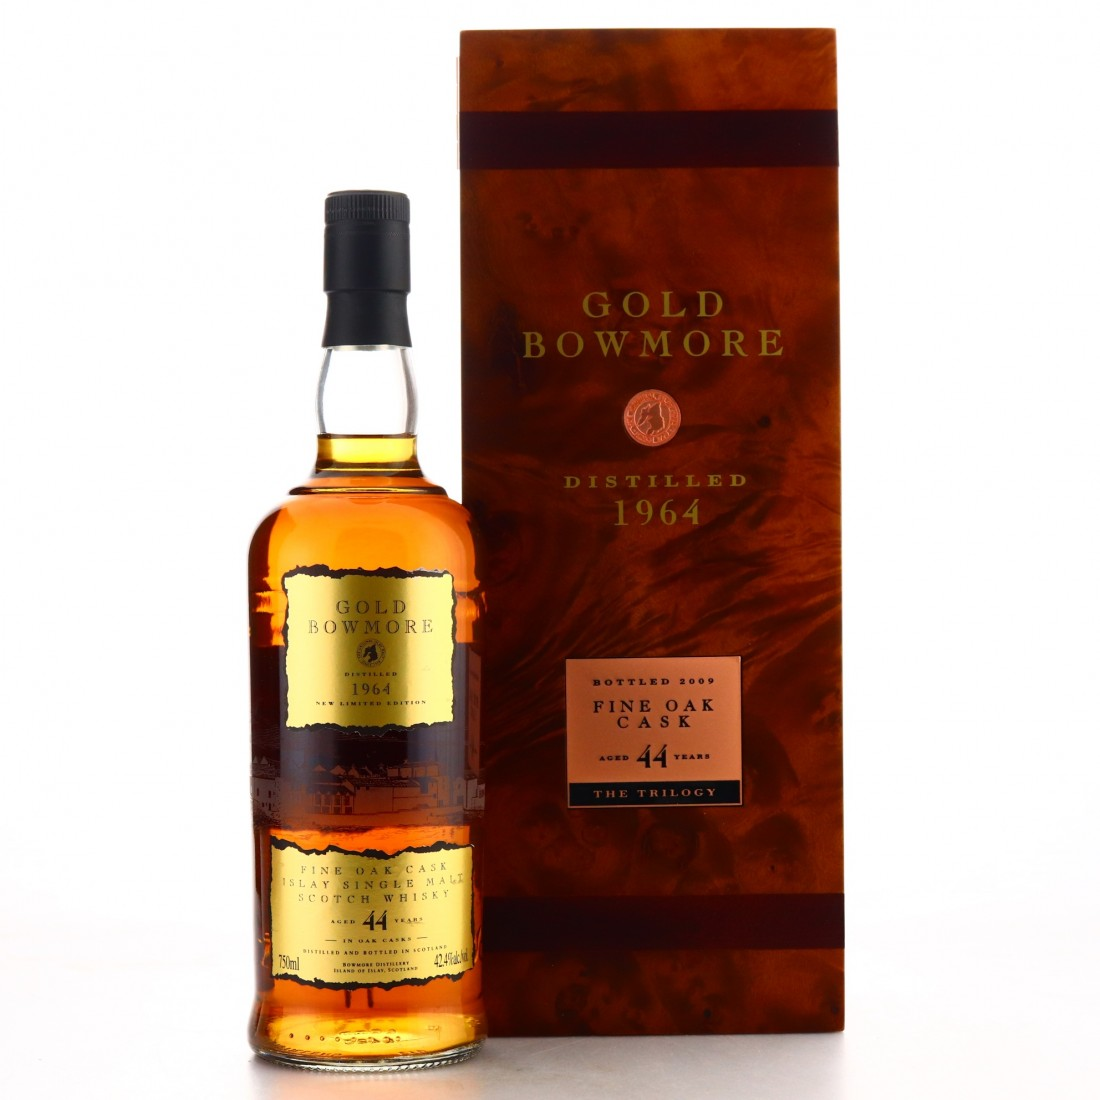 Bowmore 1964 Gold Bowmore 44 Year Old 75cl / US Import